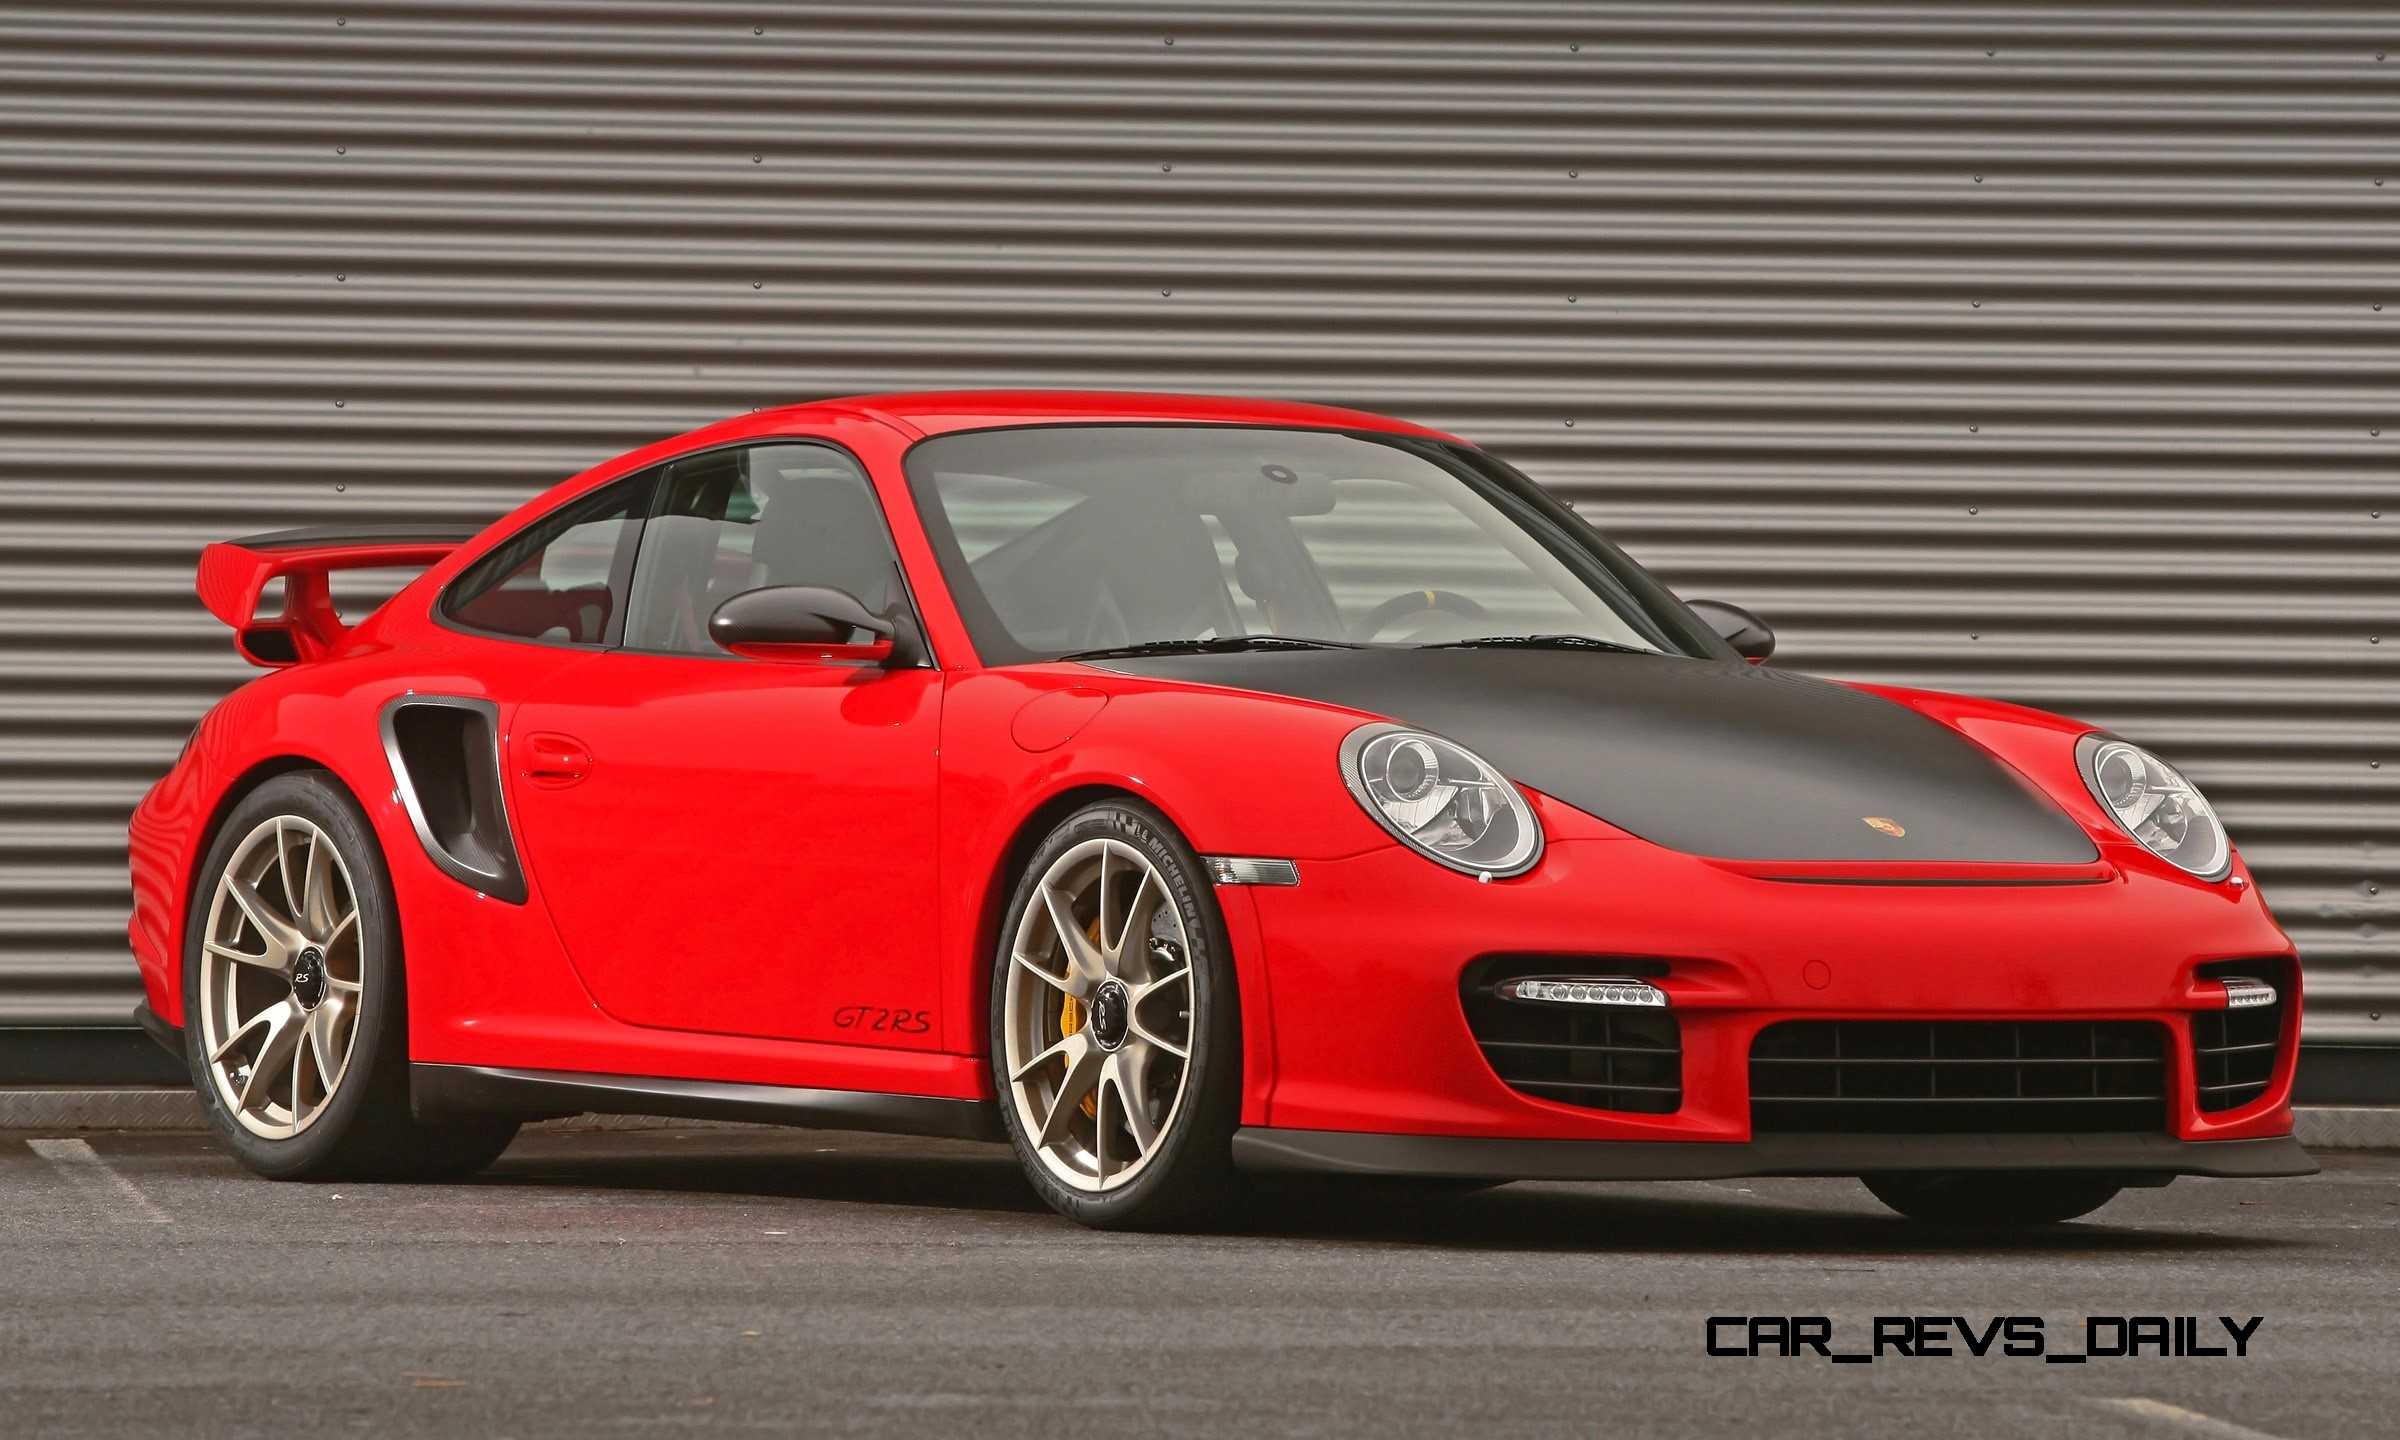 porsche 911 gt2 rs 2015 price porsche 911 gt2 rs 2018 porsche 997 gt2 rs 9 may 2015 autogespot. Black Bedroom Furniture Sets. Home Design Ideas